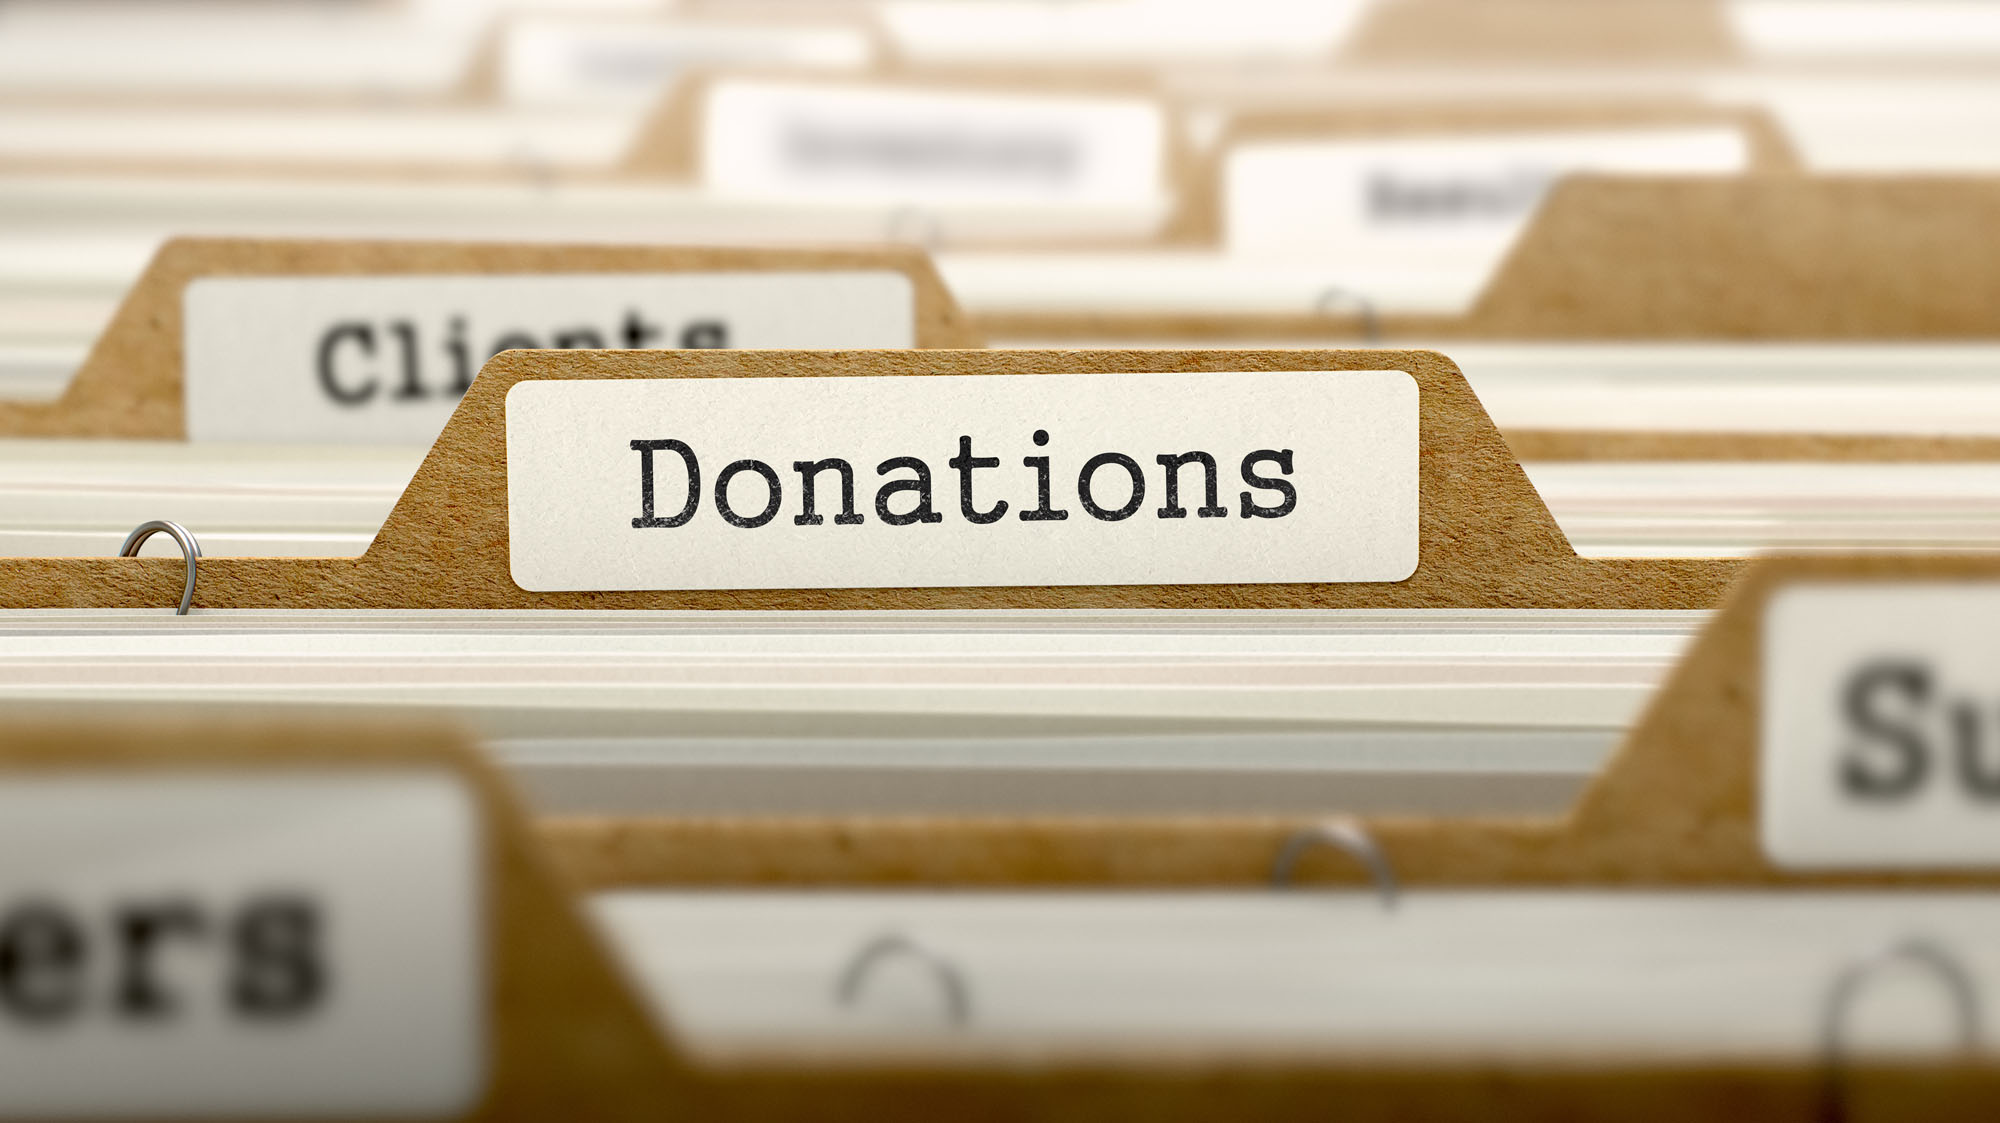 Safeguard the goodwill of donors through GDPR compliance